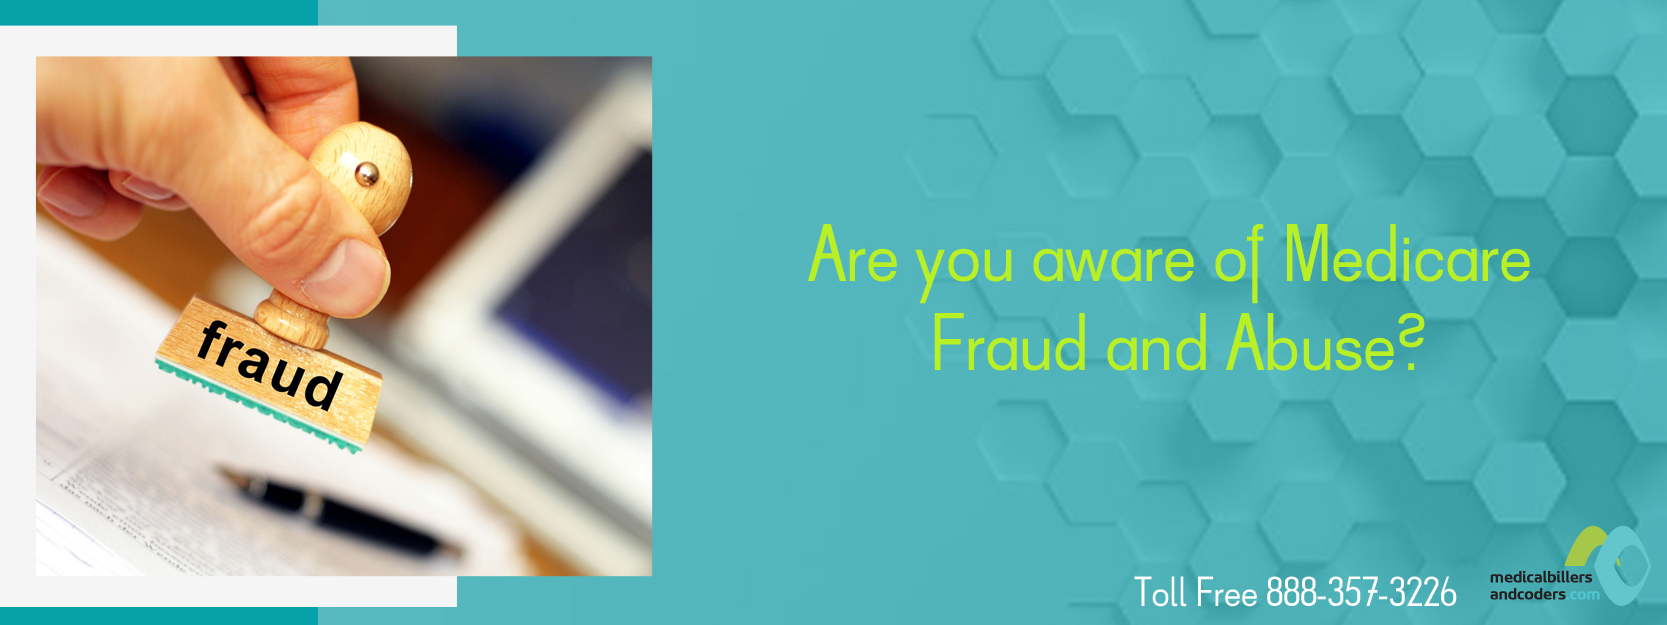 blog-are-you-aware-of-medicare-fraud-and-abuse